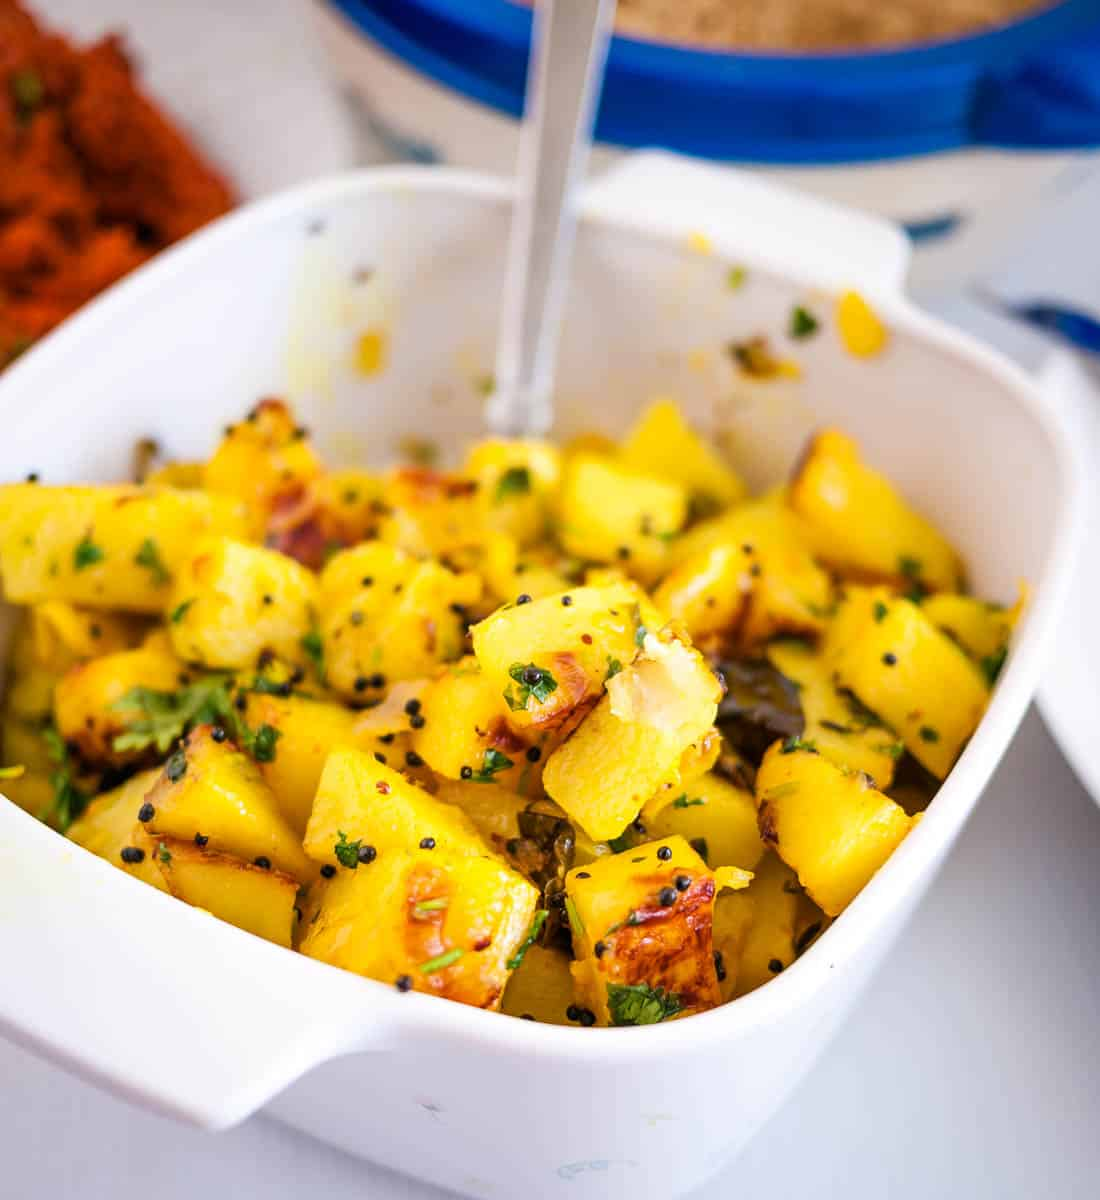 A dish with potatoes made with Indian spices.